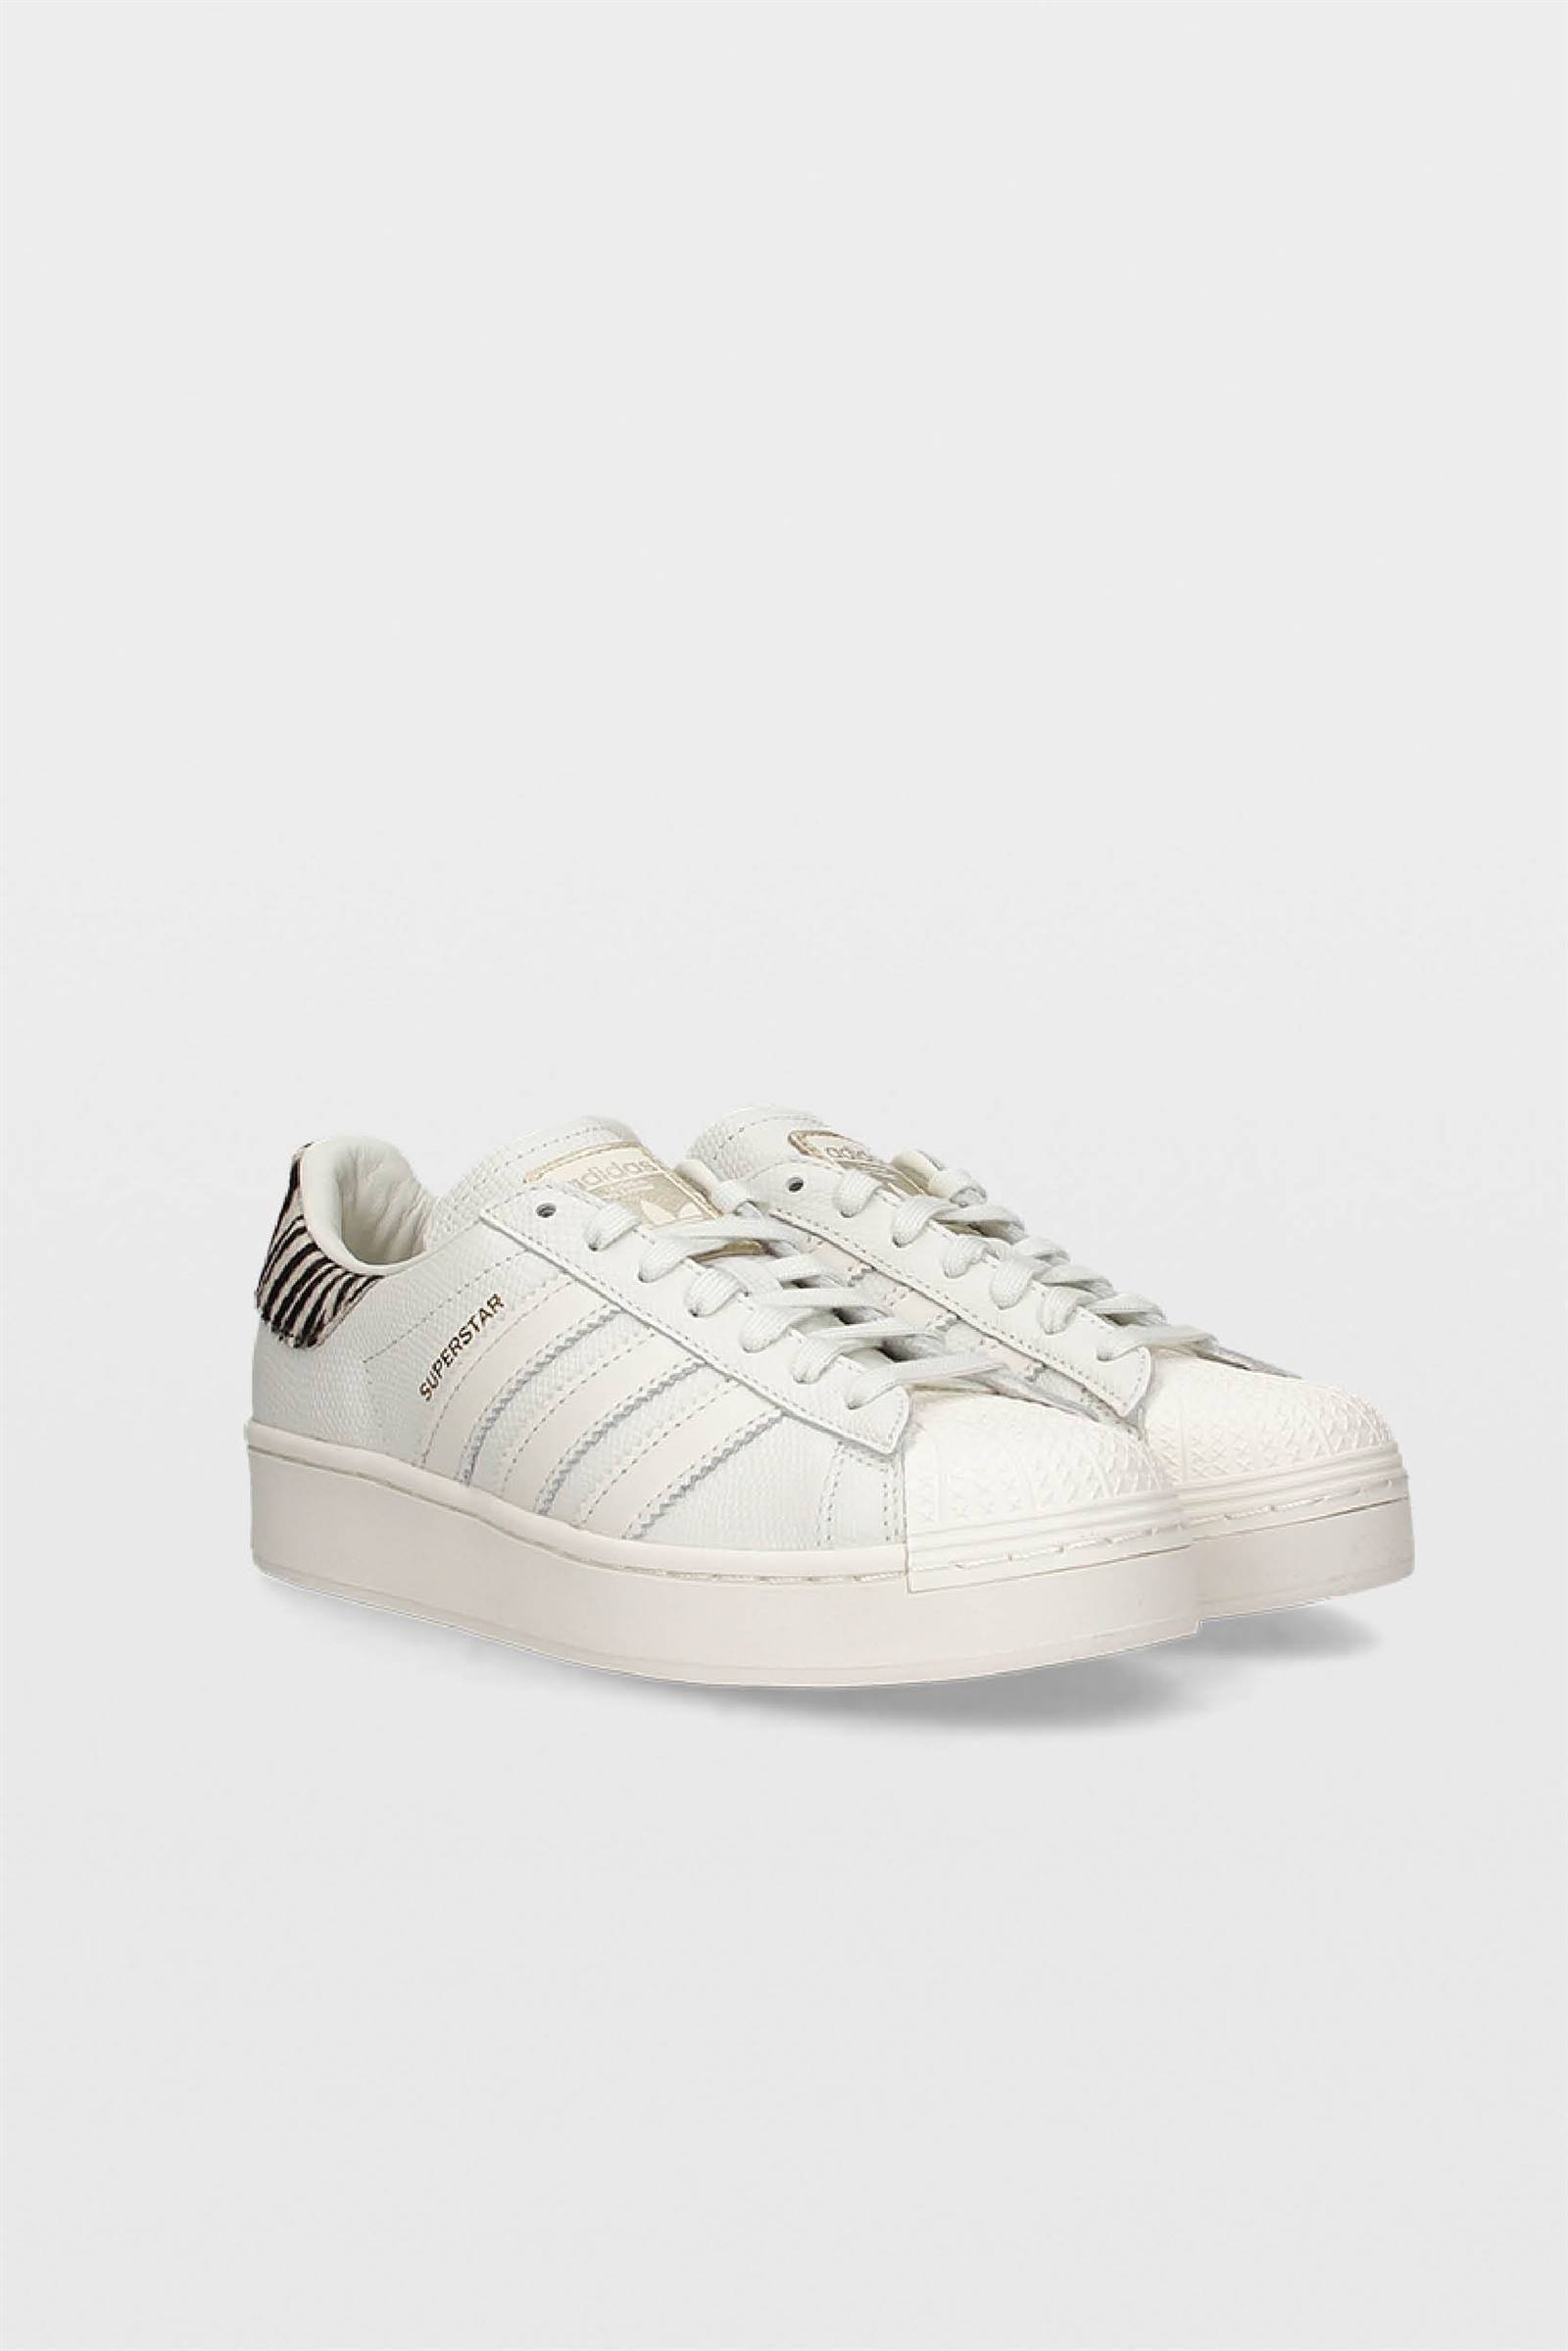 adidas superstar black friday. Zapatillas Adidas Superstar Bold